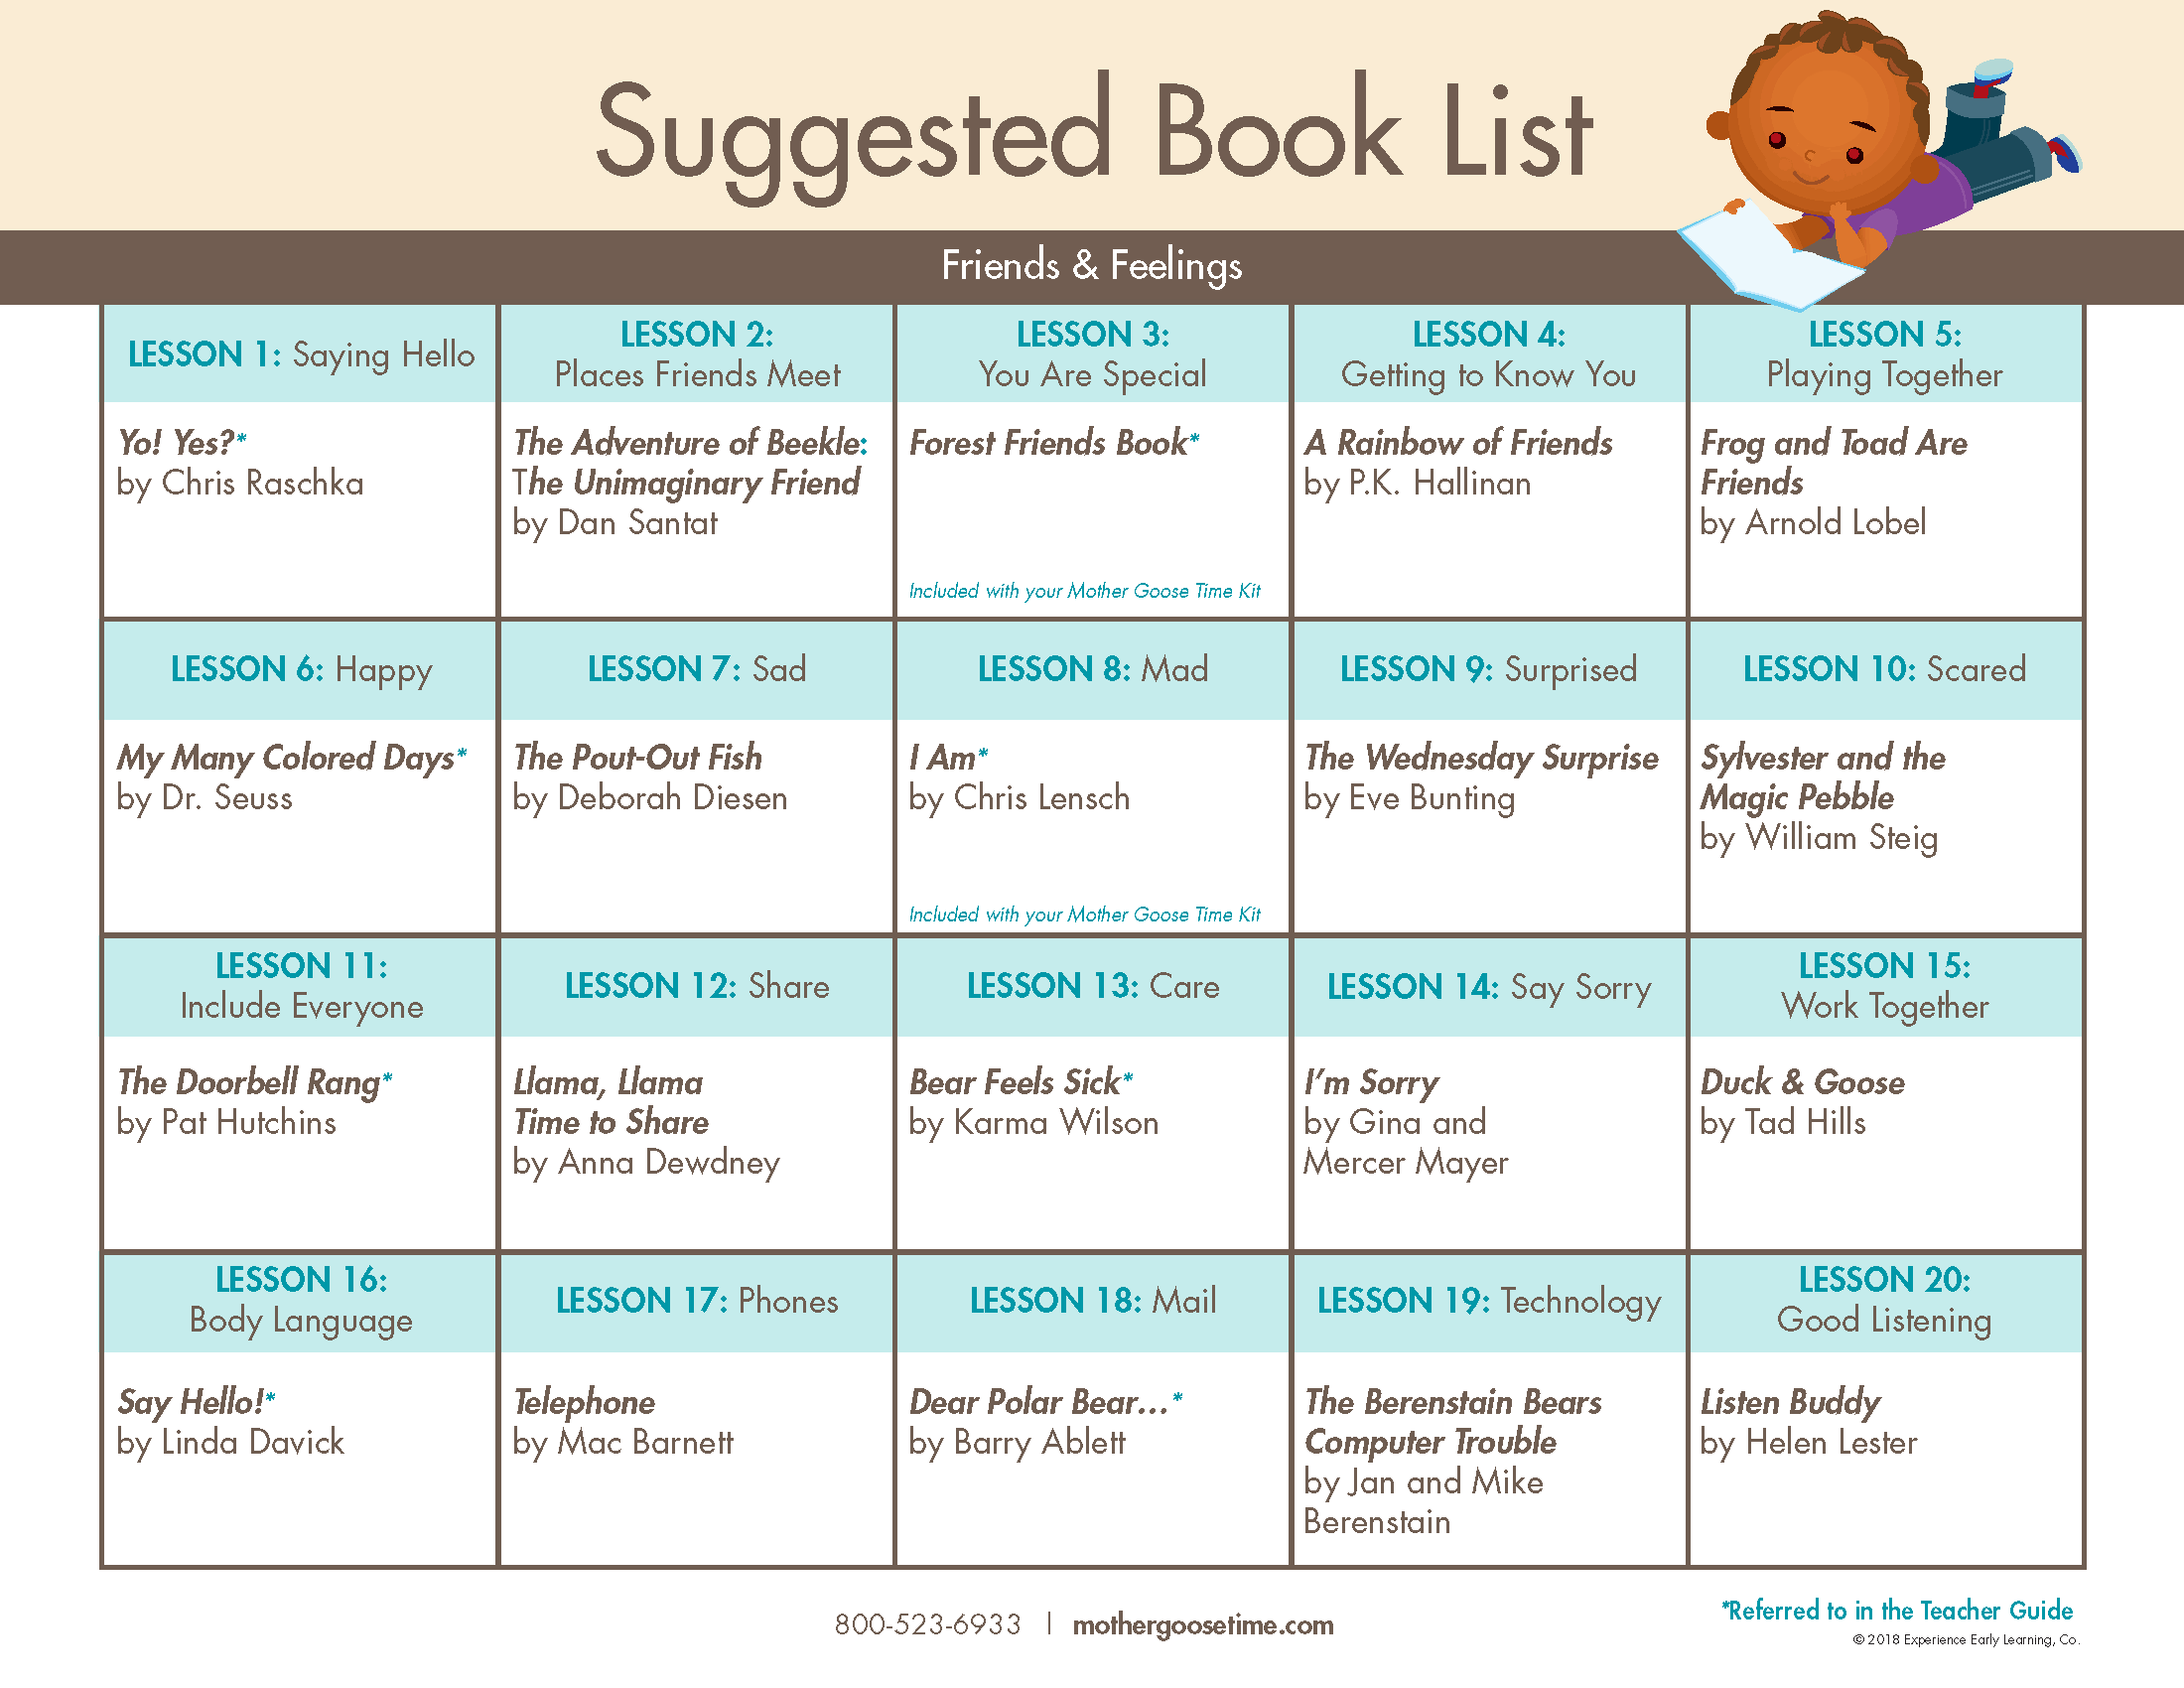 Suggested Book List from Mother Goose Time for Friends and Feelings